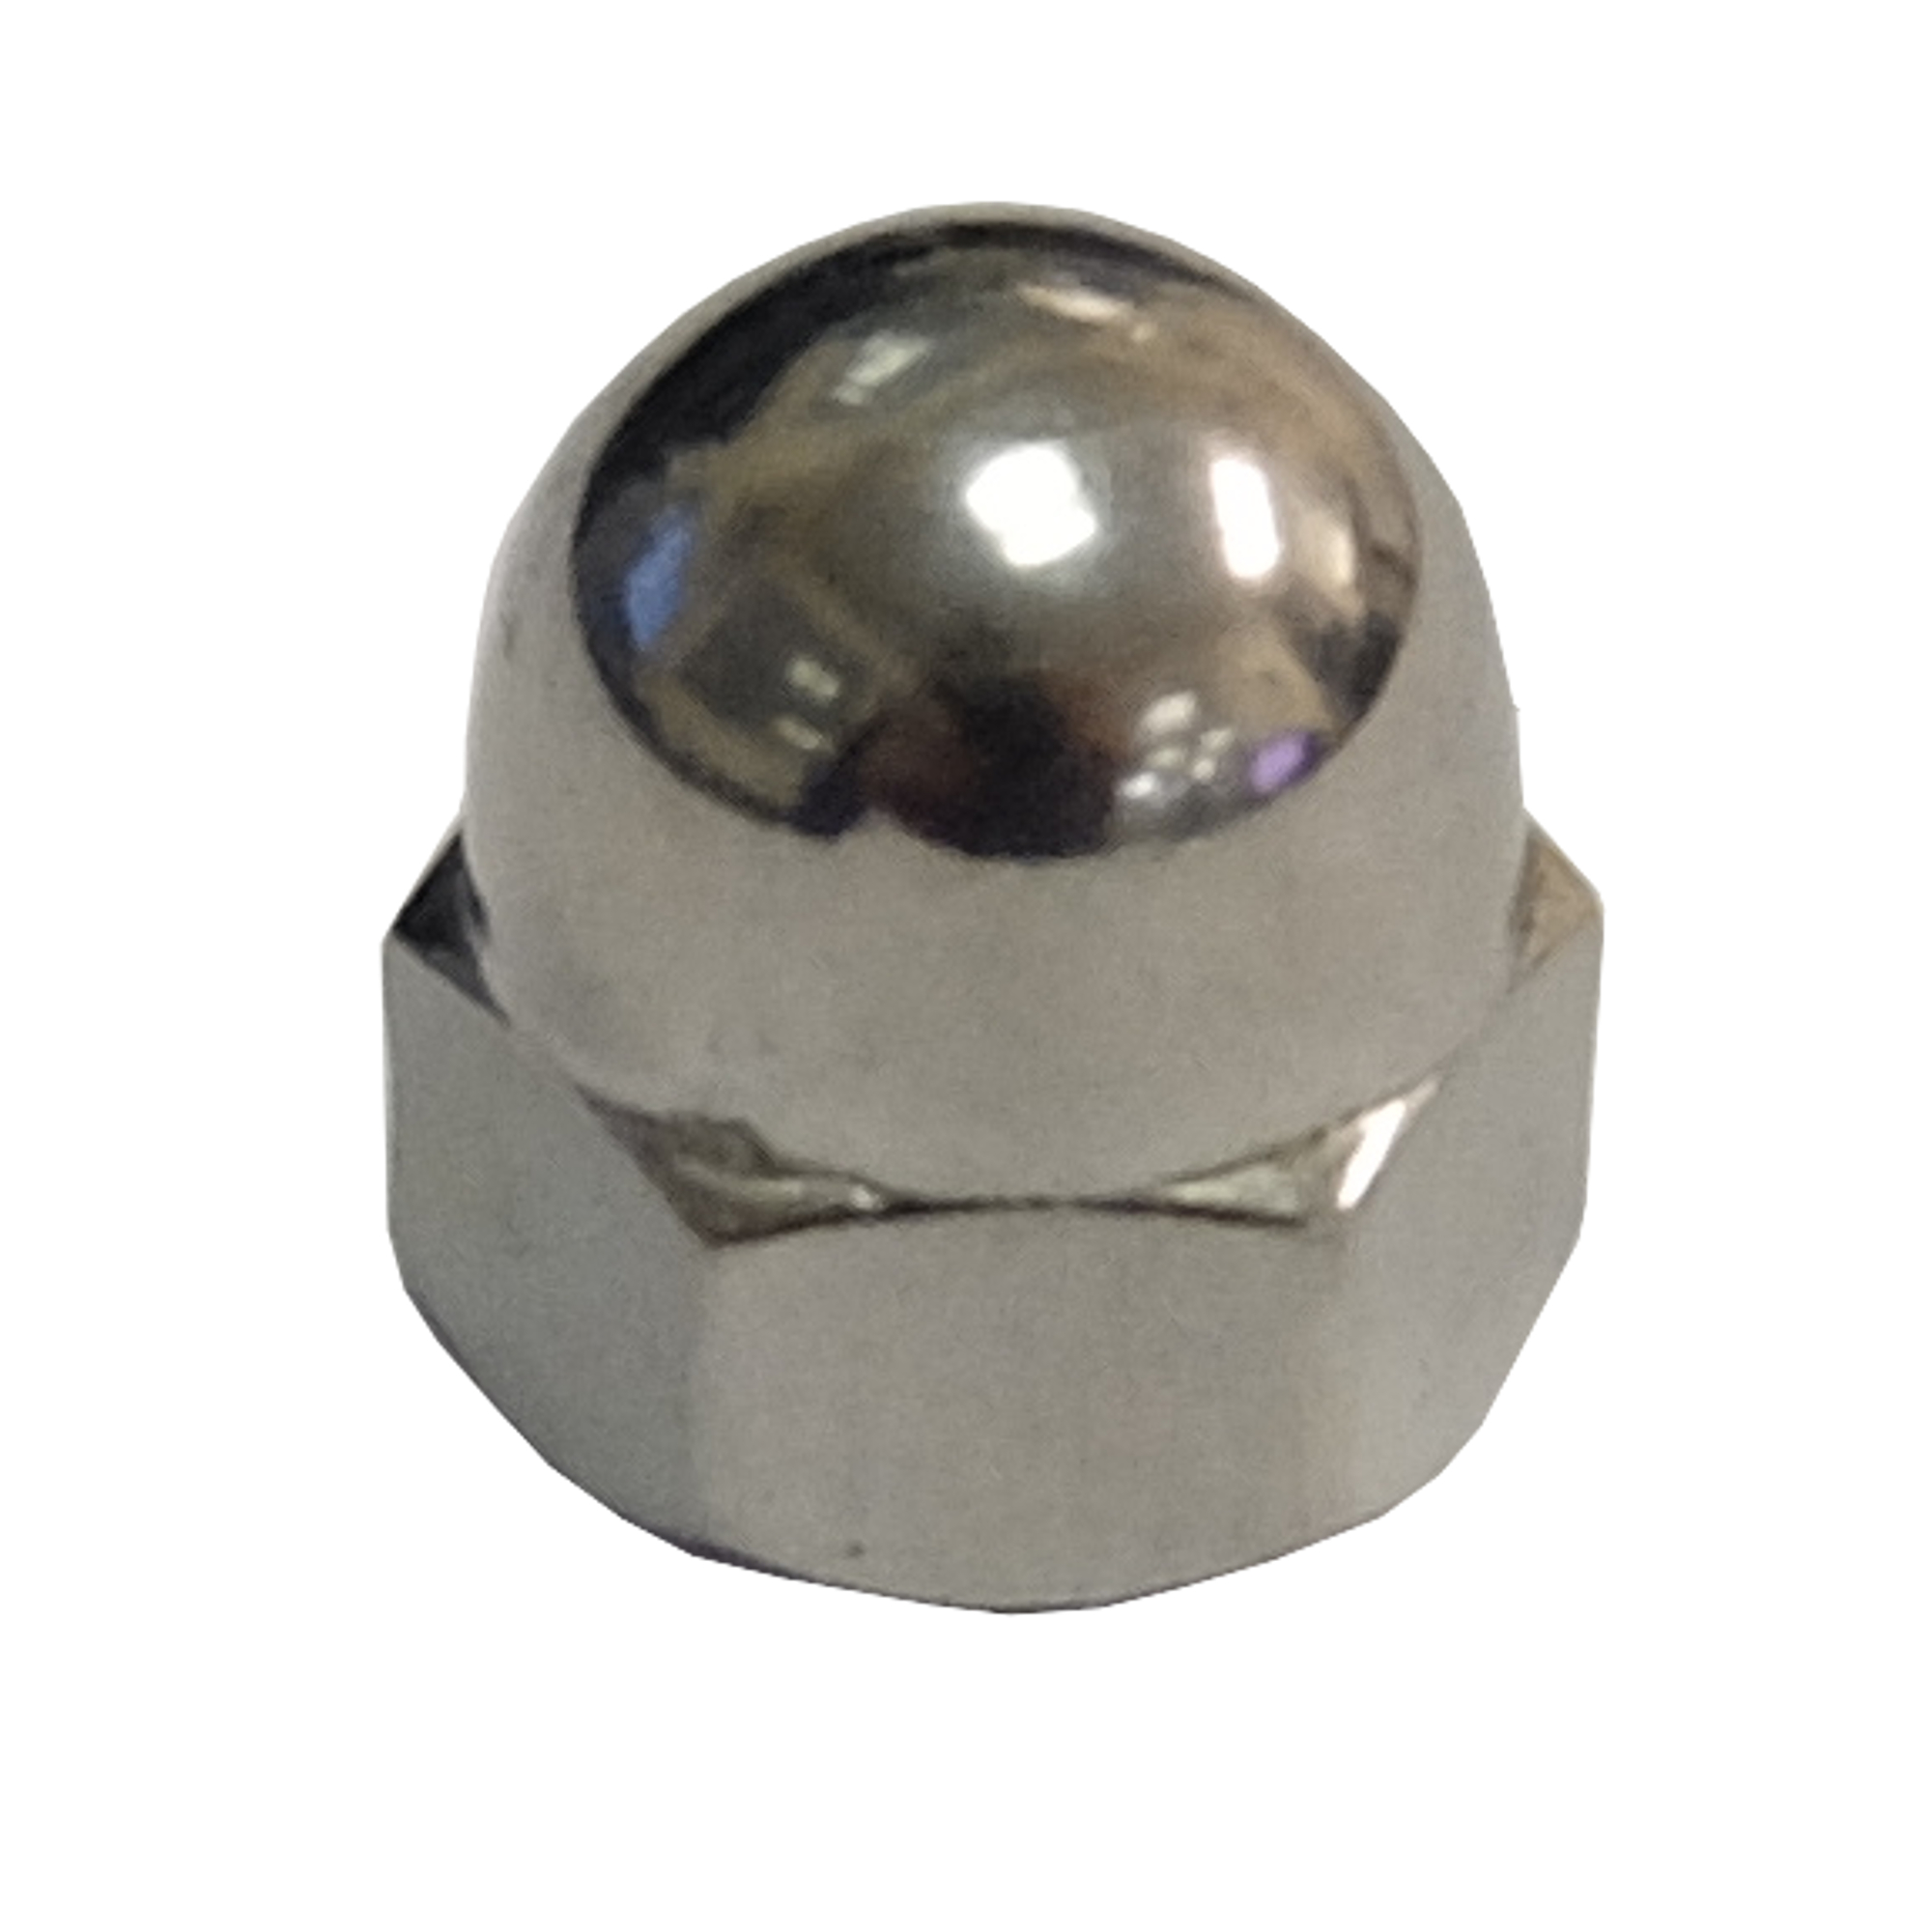 M6 RH Stainless Steel DIN 1587 Dome Nut